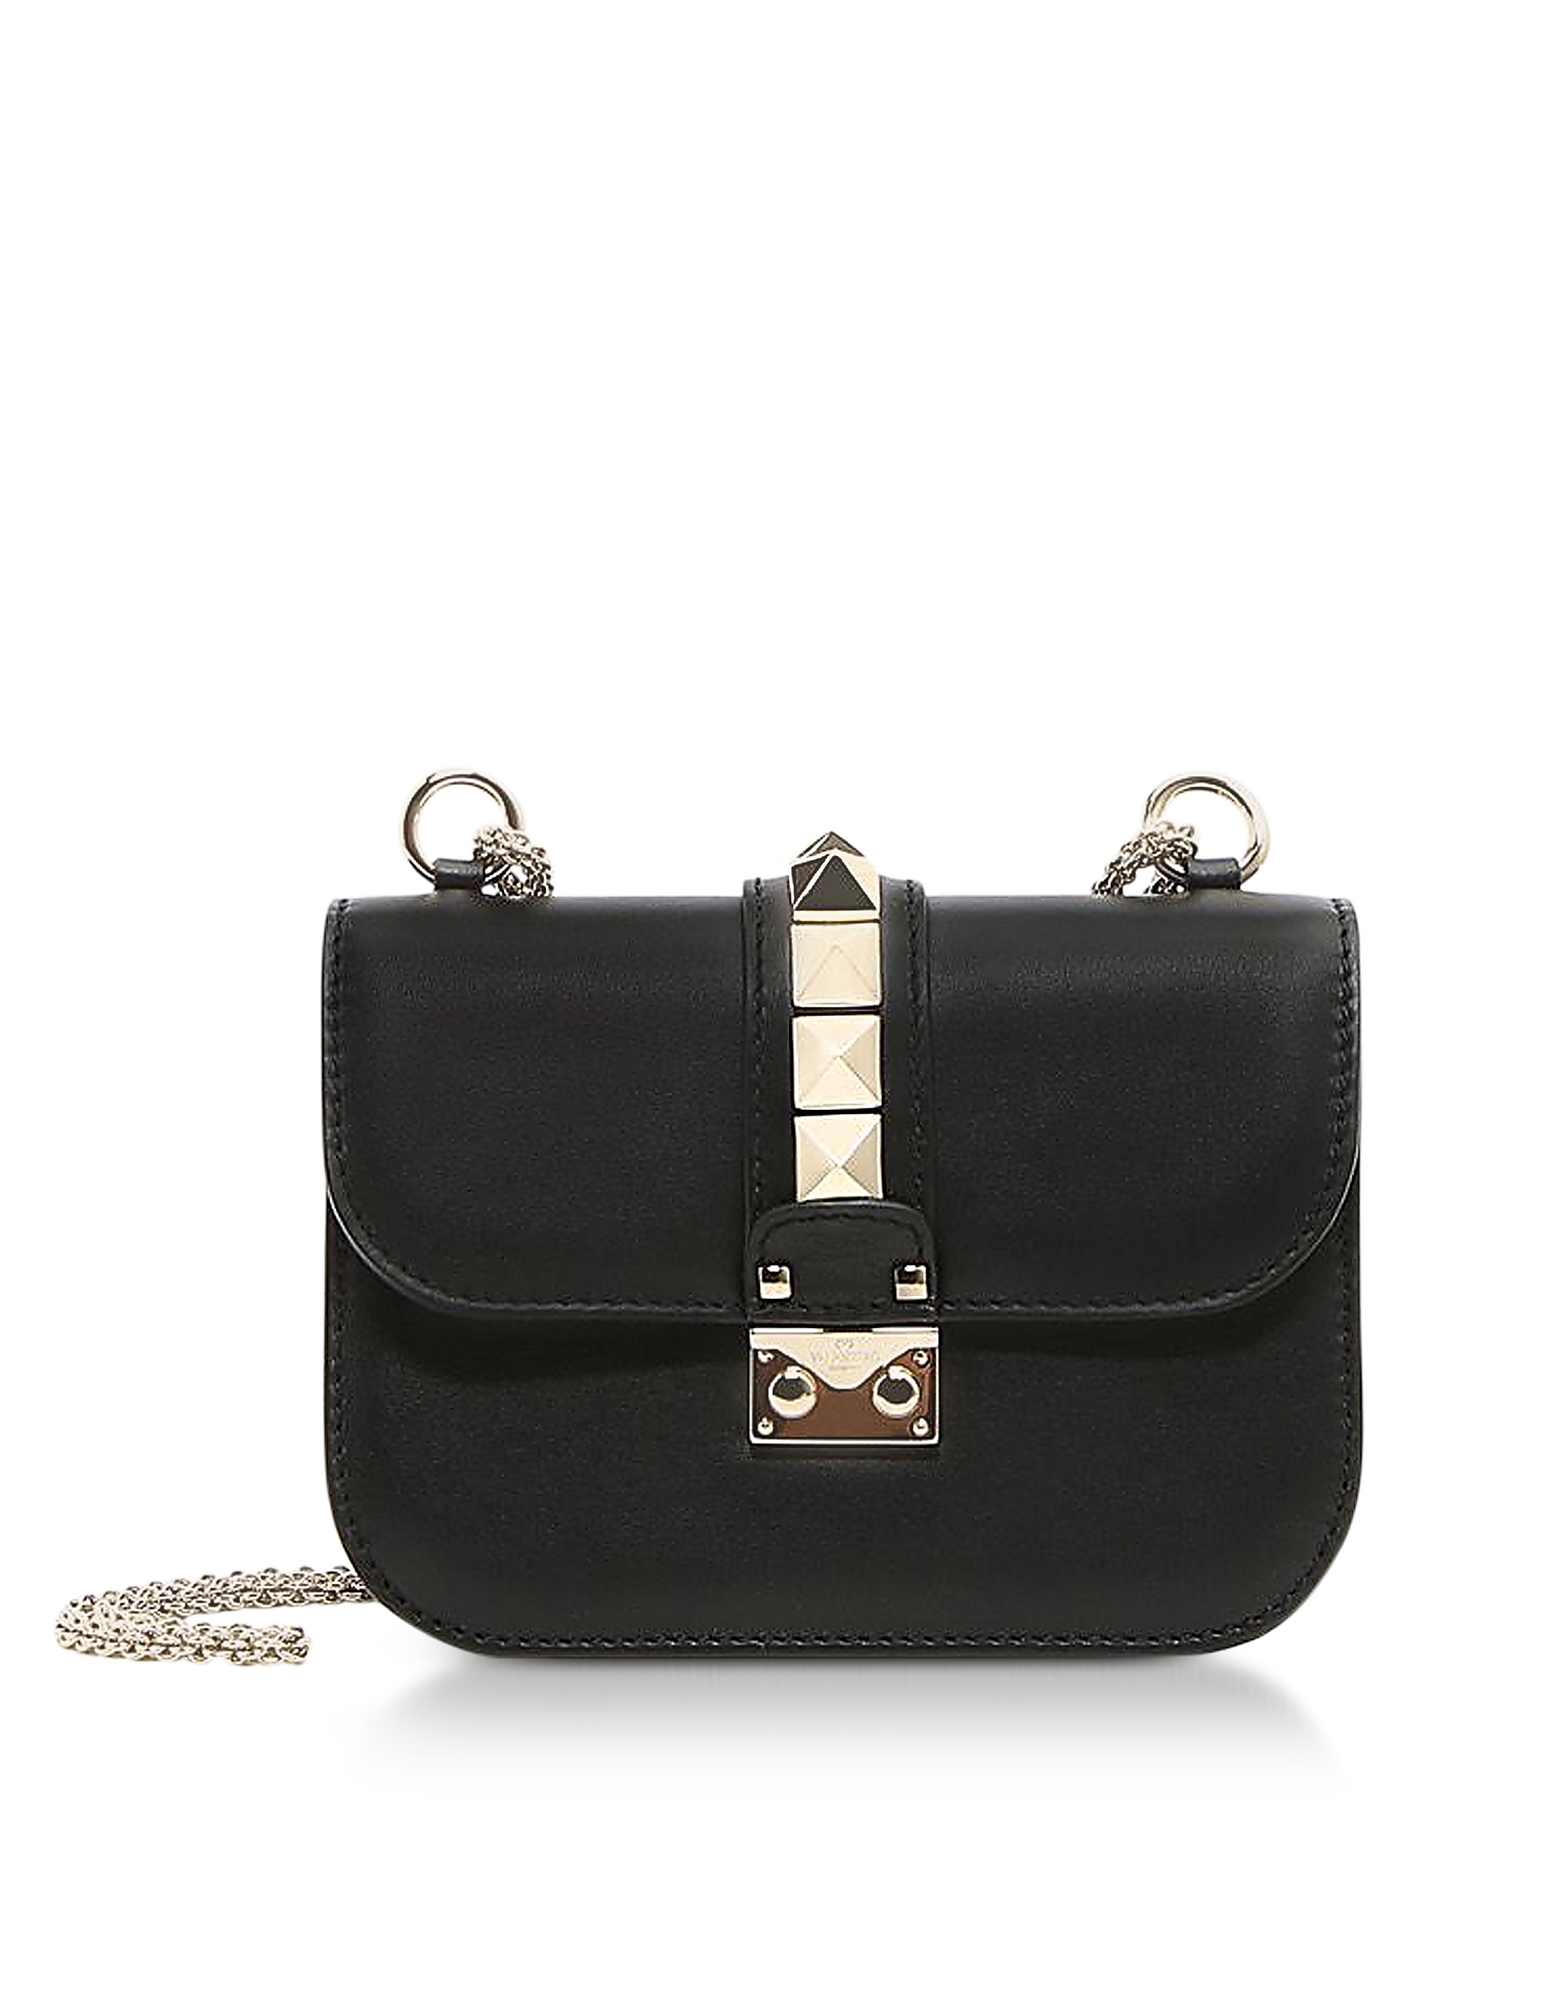 Valentino Handbags, Lock Small Black Leather Chain Shoulder Bag